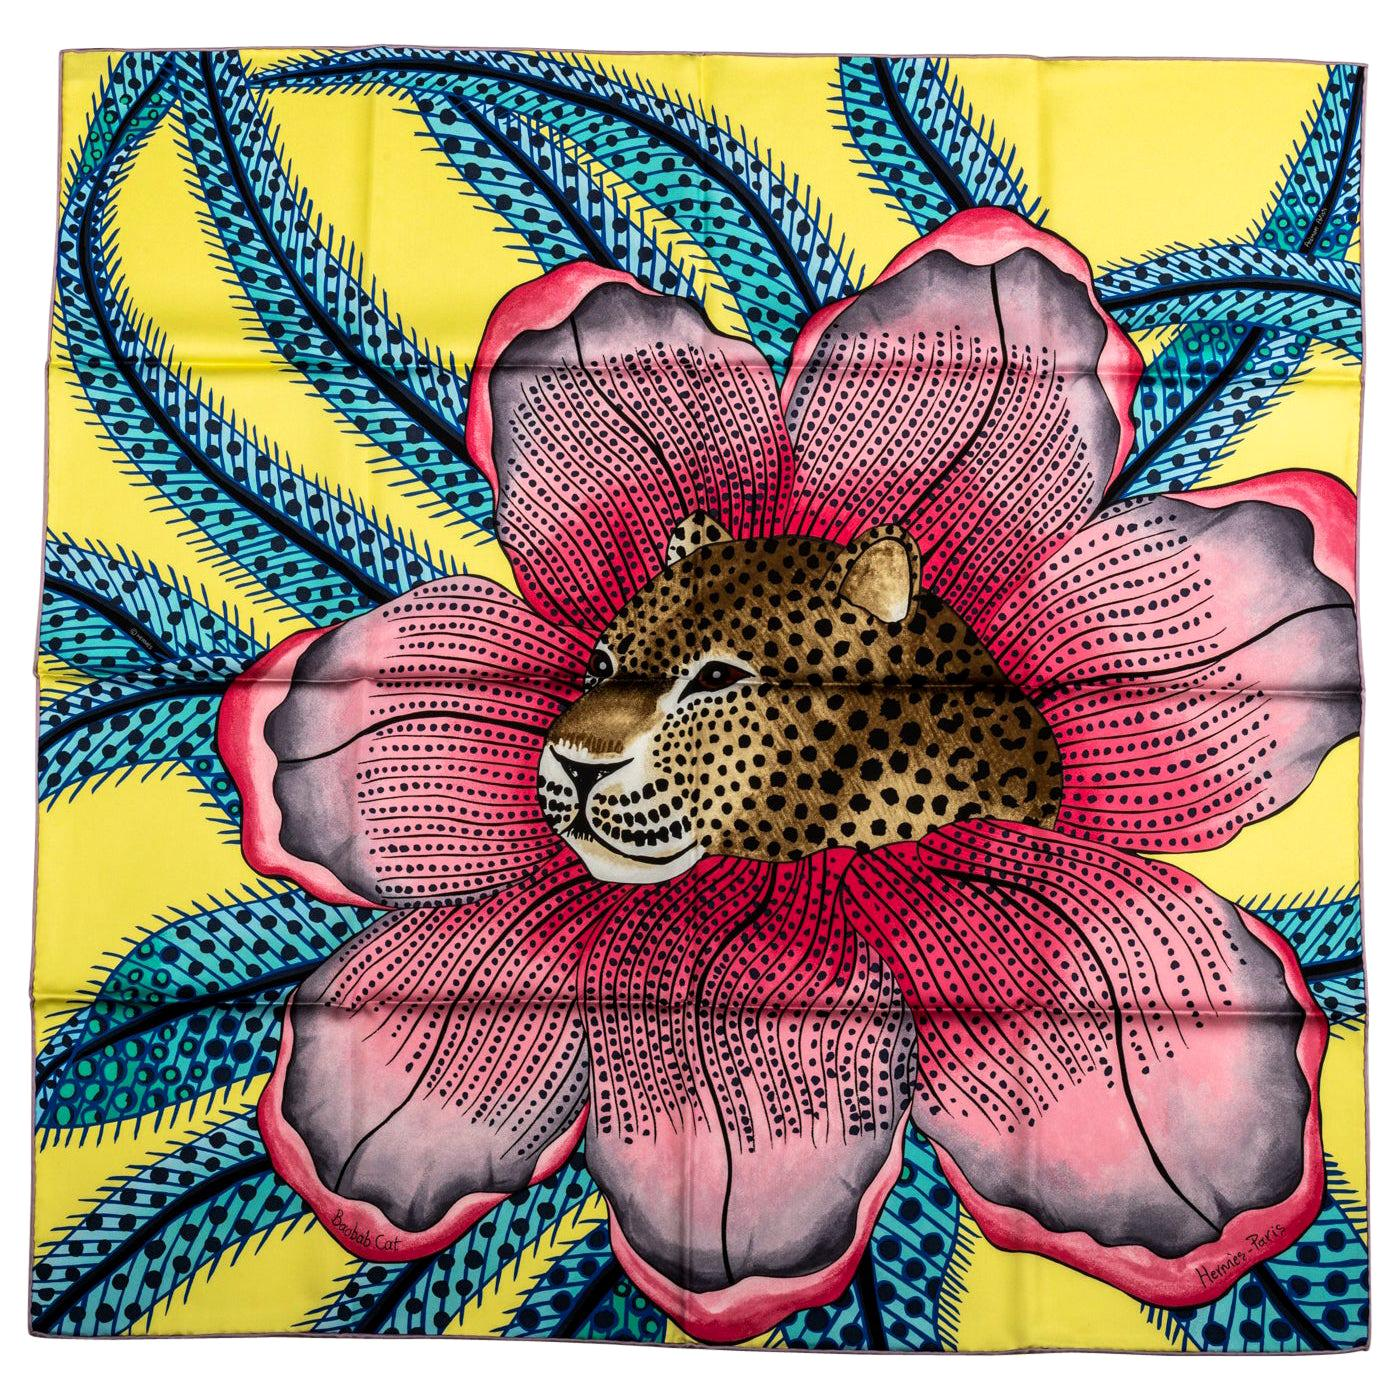 New Hermes Yellow PInk Jaguar Silk Scarf